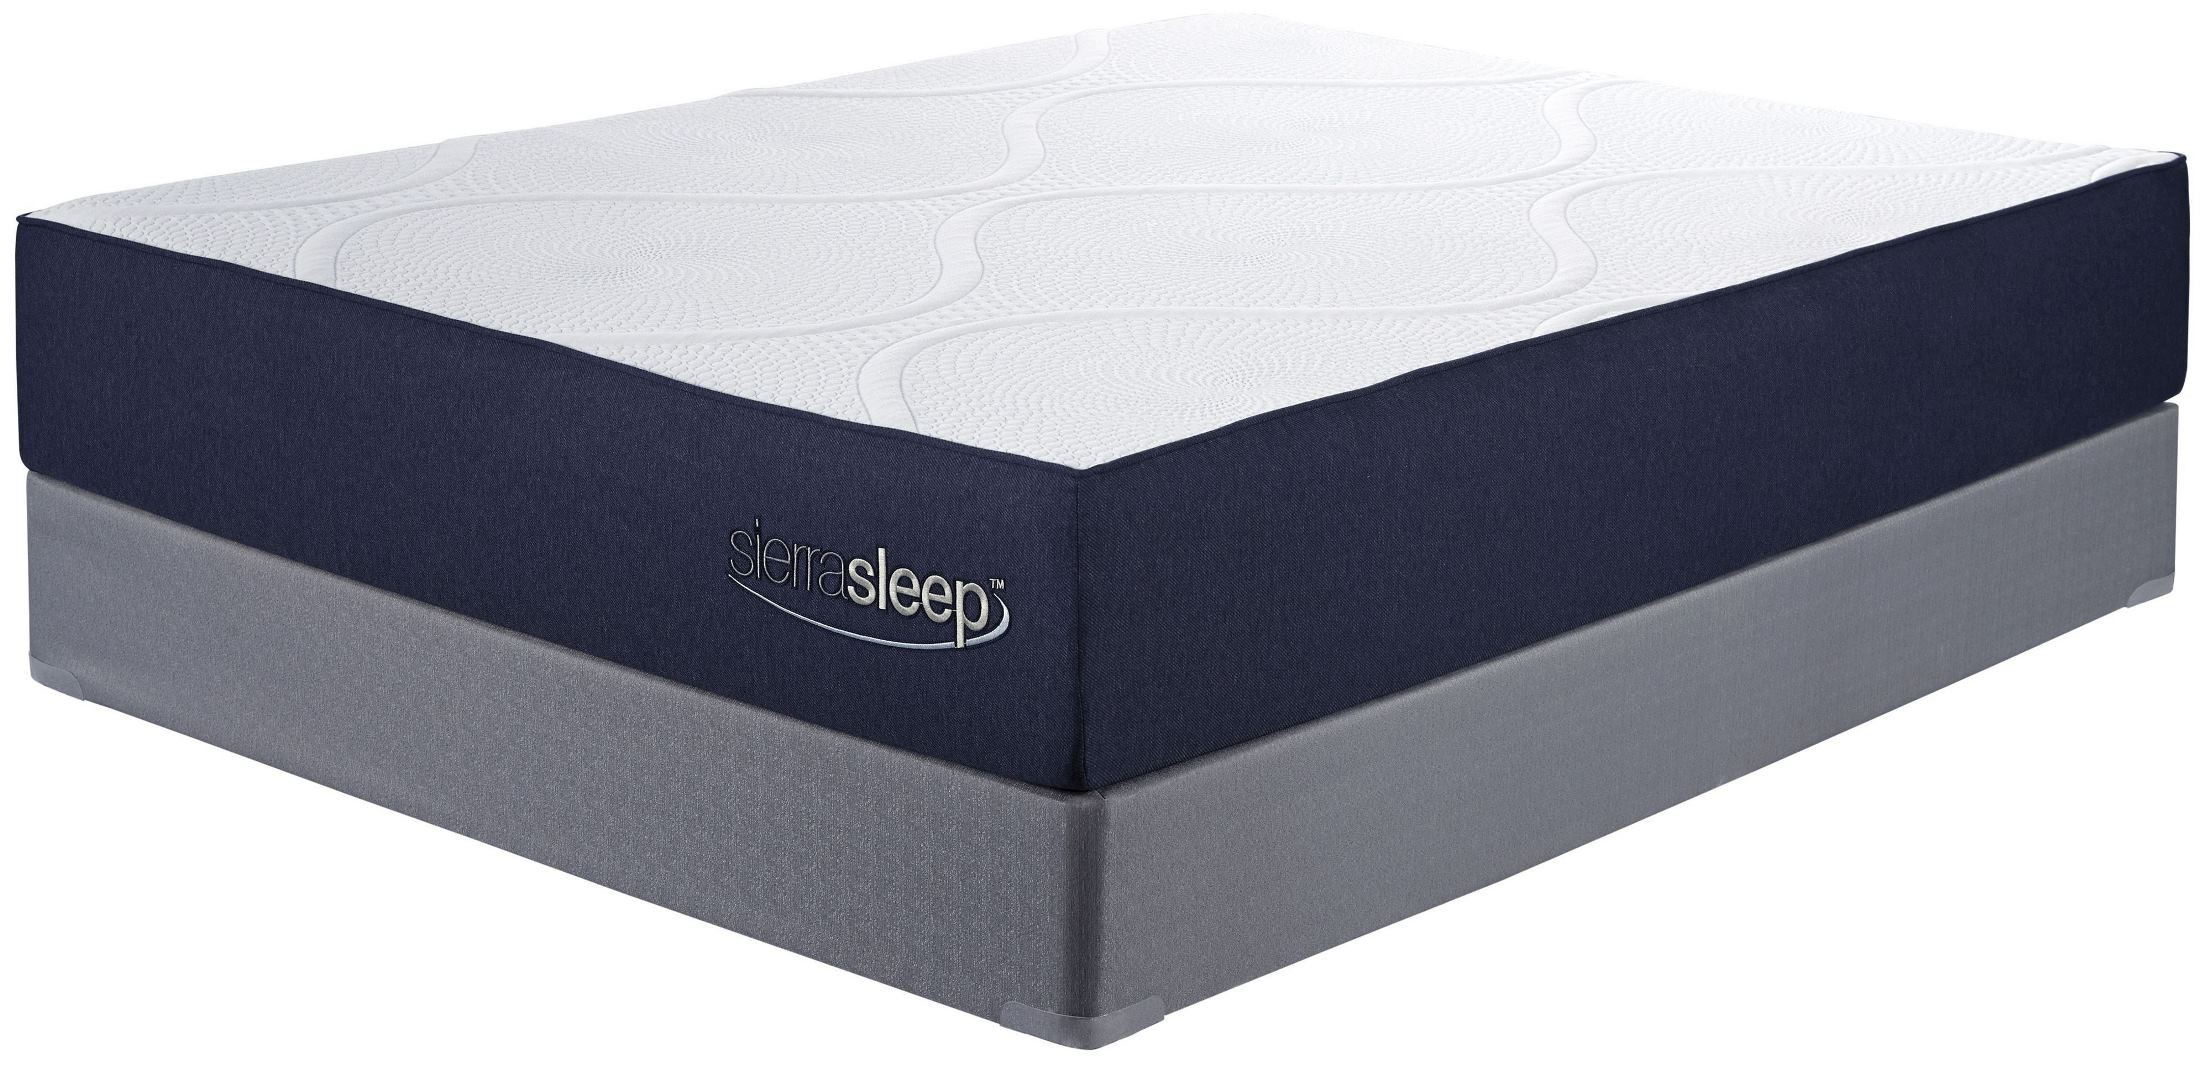 11 Inch Gel Memory Foam White Cal King Mattress From Ashley M97351 Coleman Furniture